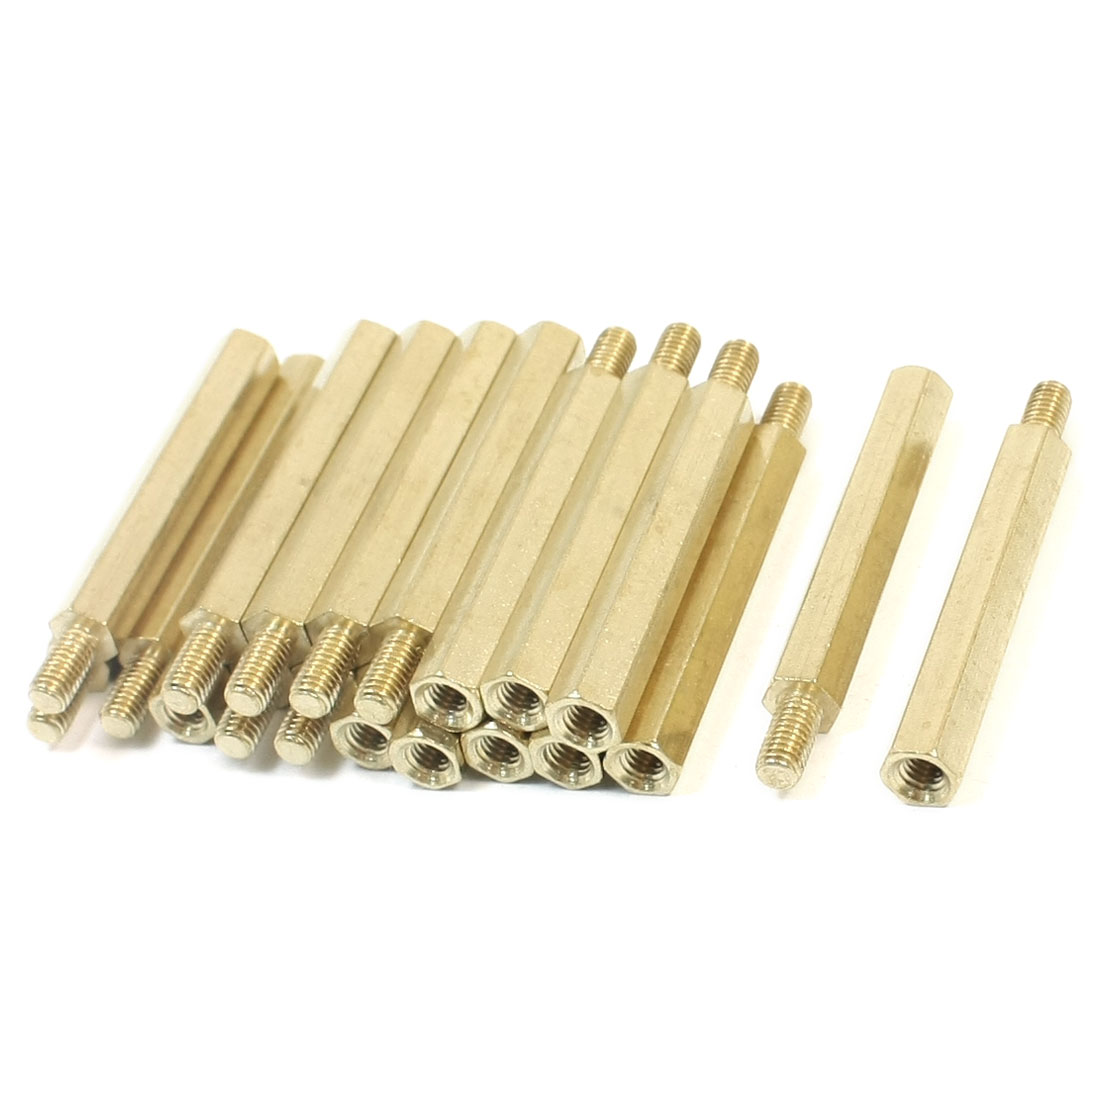 20 Pcs M3 x 30mm x 36mm Male Female Thread Gold Tone Brass Pillar Hexagonal Nut Standoff Spacer